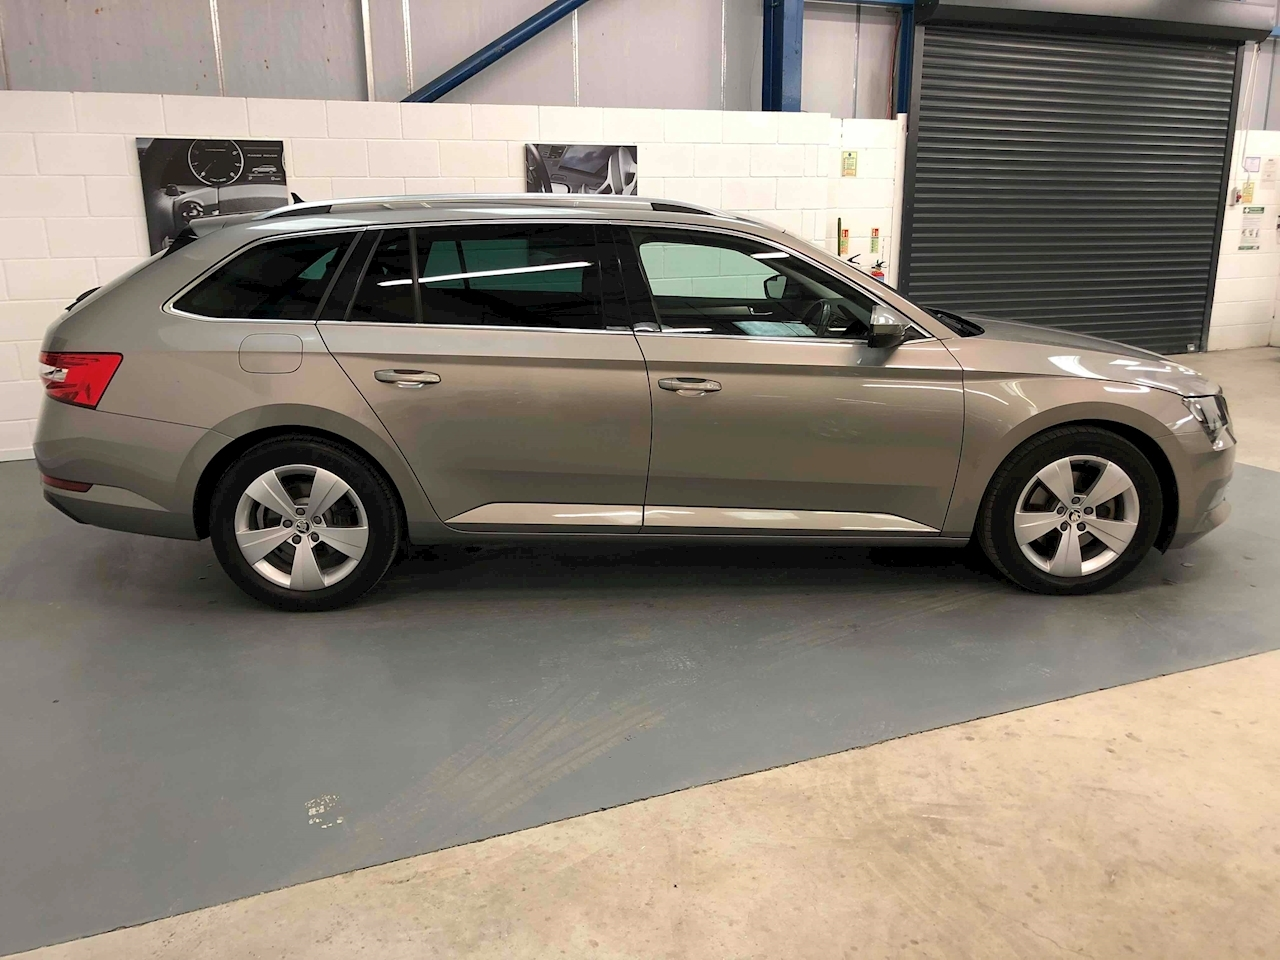 SKODA Superb SE Business Estate 2.0 Manual Diesel